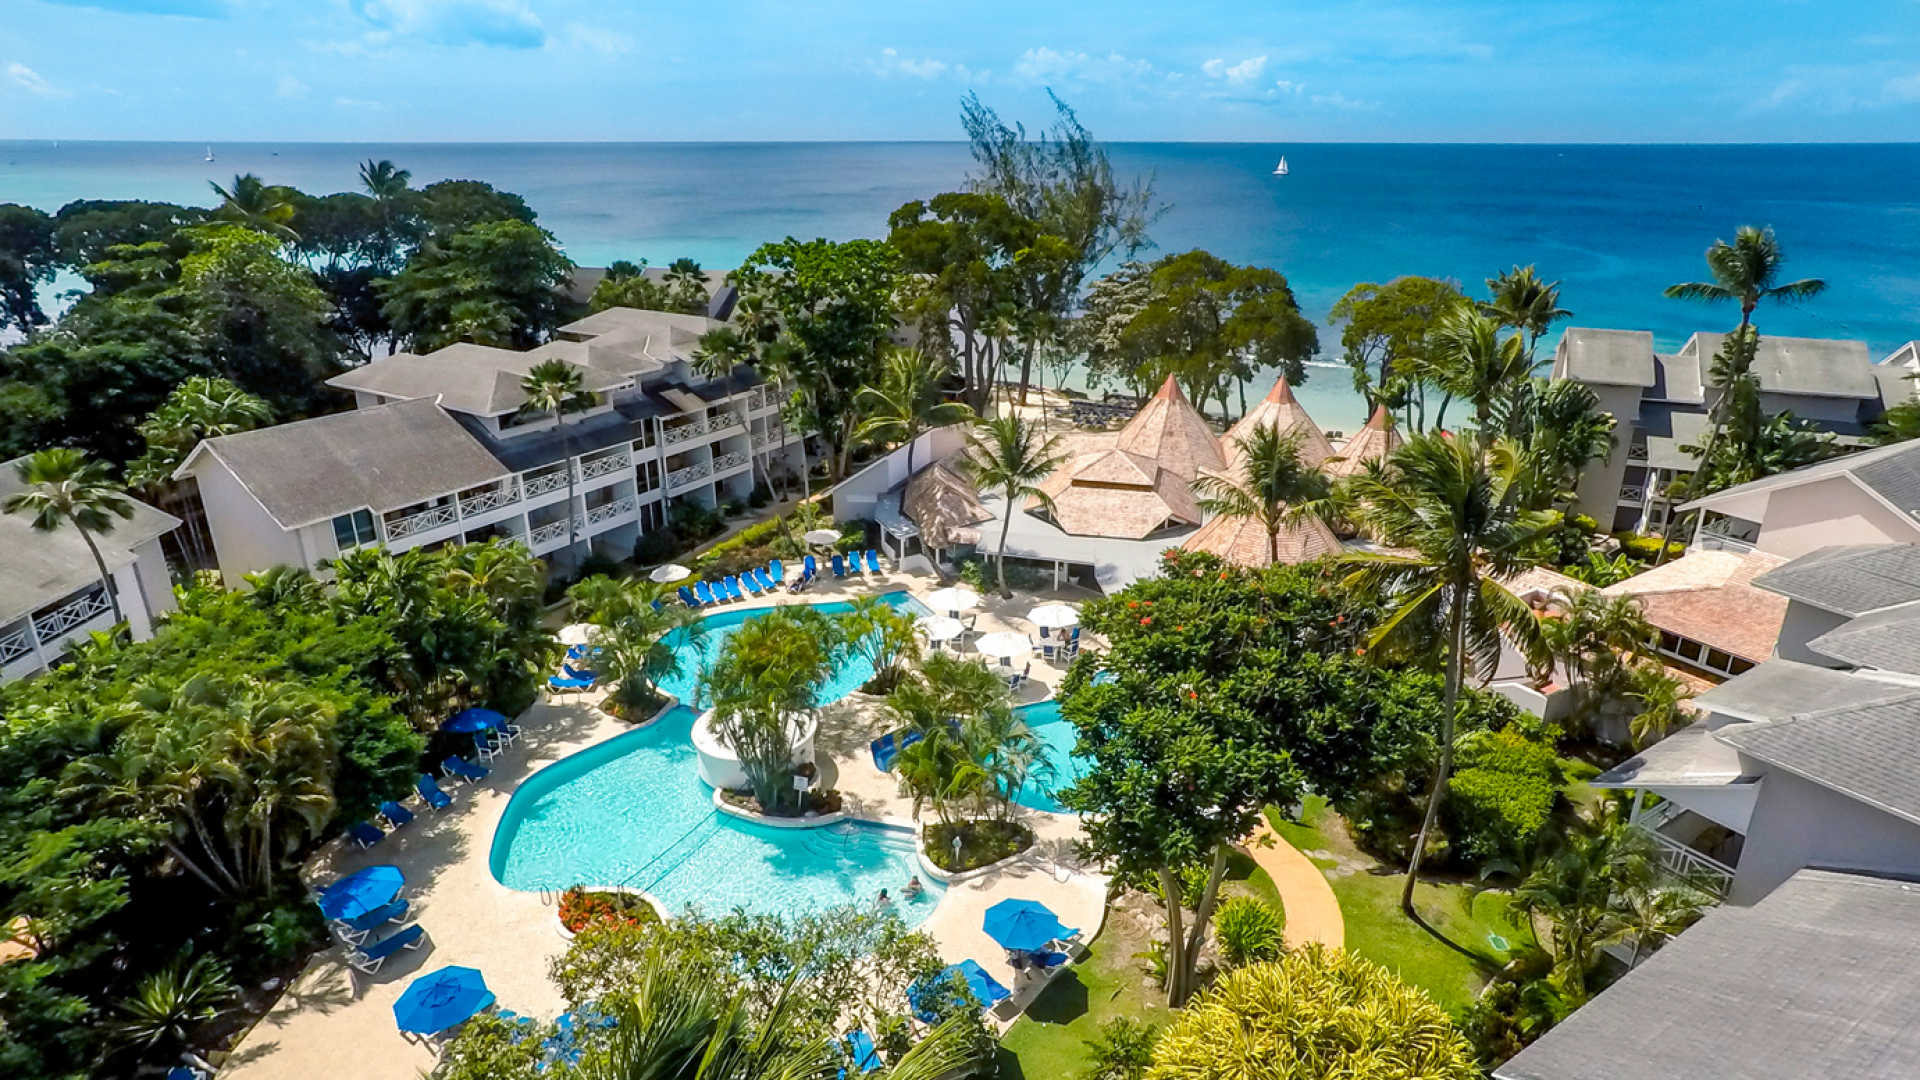 THE CLUB BARBADOS RESORT & SPA <br/> Donated by: ELITE ISLAND RESORTS CARIBBEAN <br/> Valued at: $2,400 Buy It Now: $400